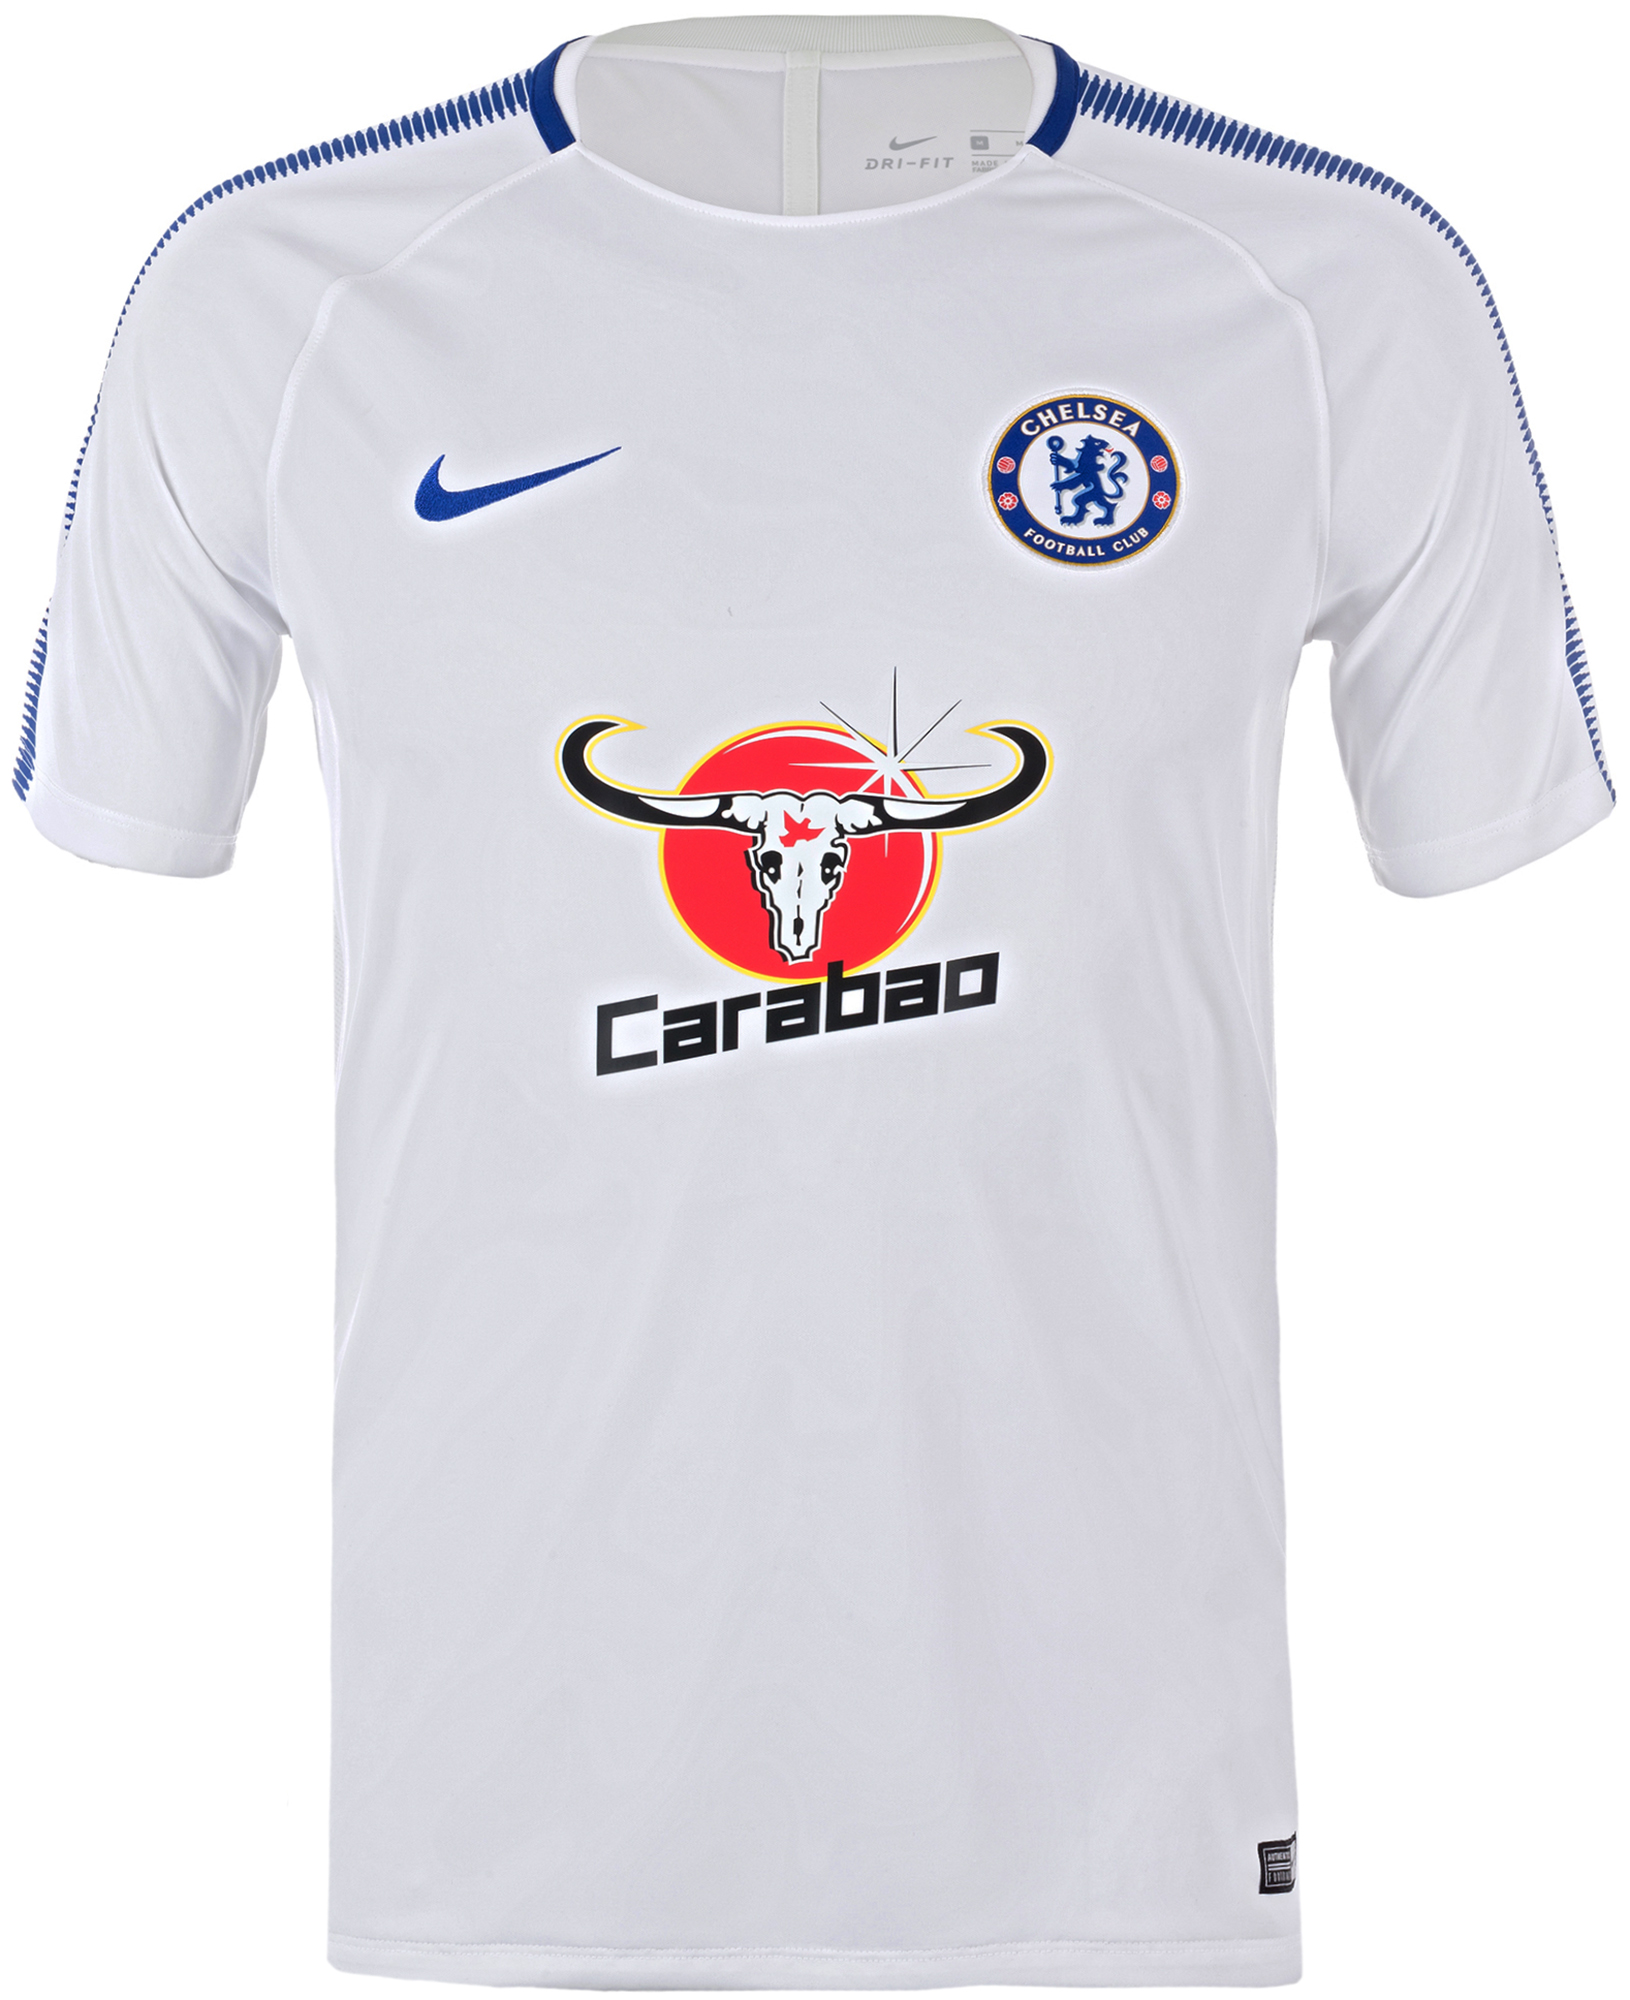 Nike Футболка мужская Nike Breathe Chelsea FC Squad свитшот breathe out hey you breathe out